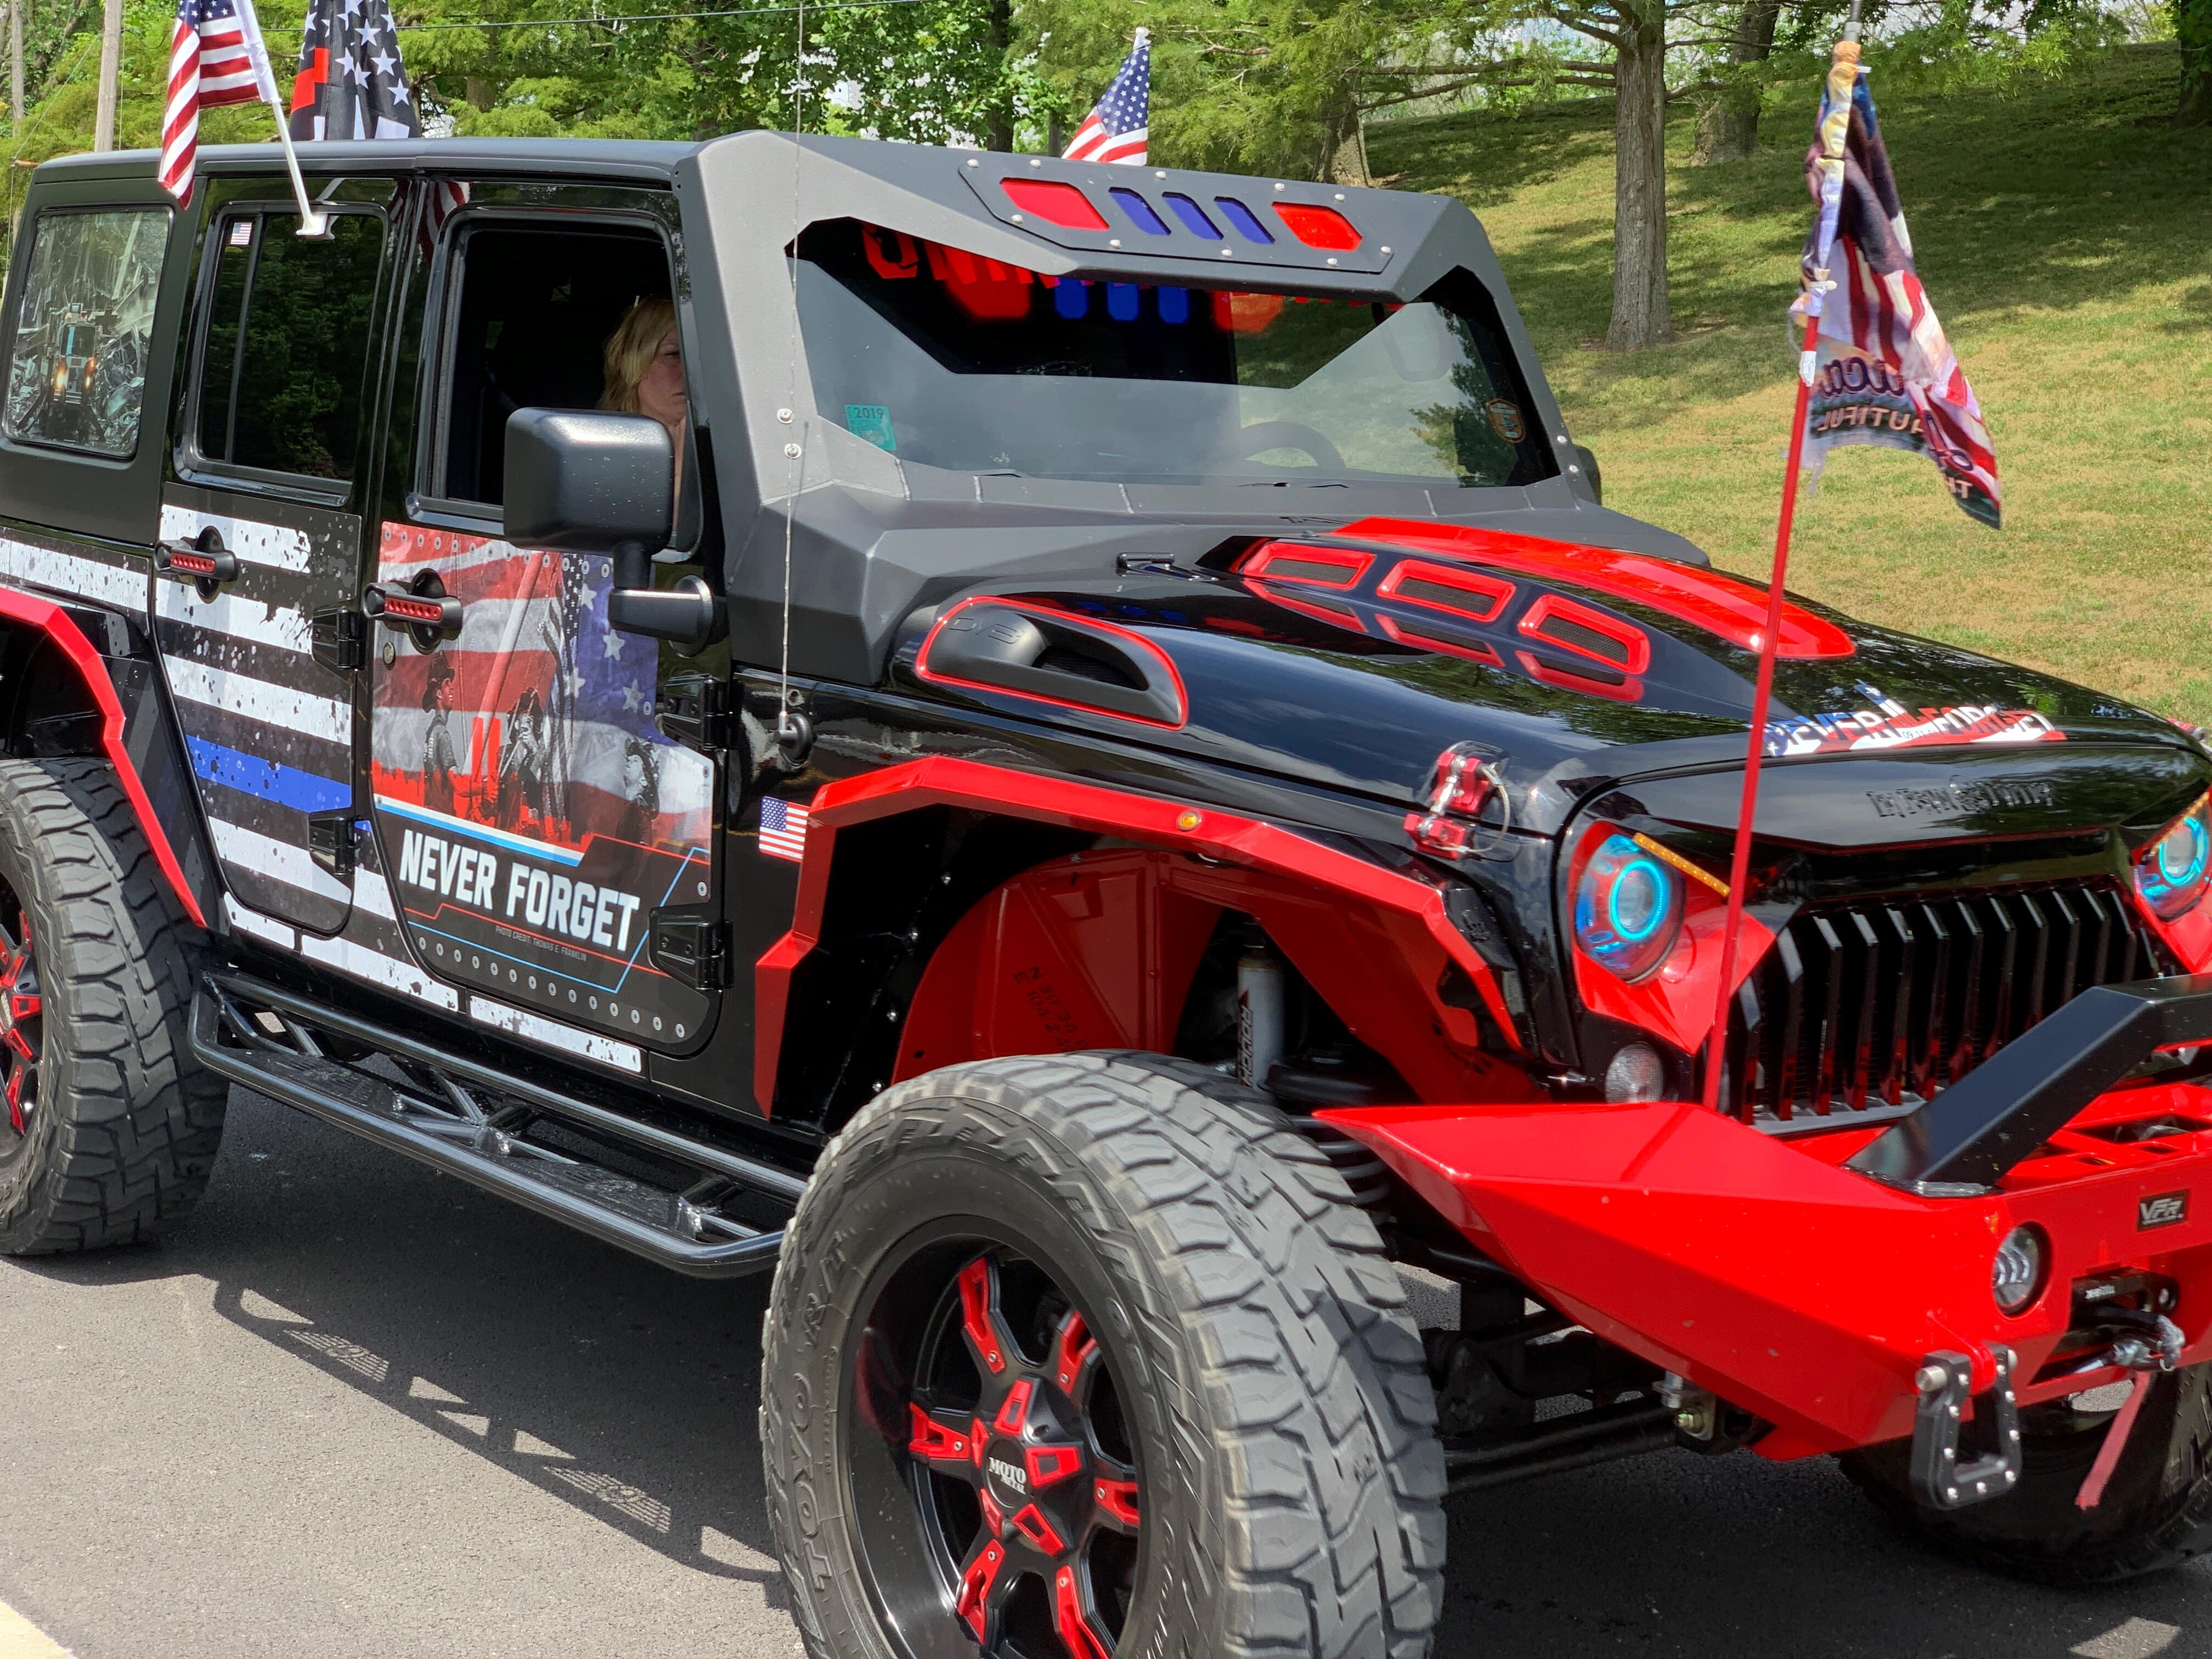 PHOTOS: 600 Jeeps and Motorcycles Participate in Peacekeepers Rally